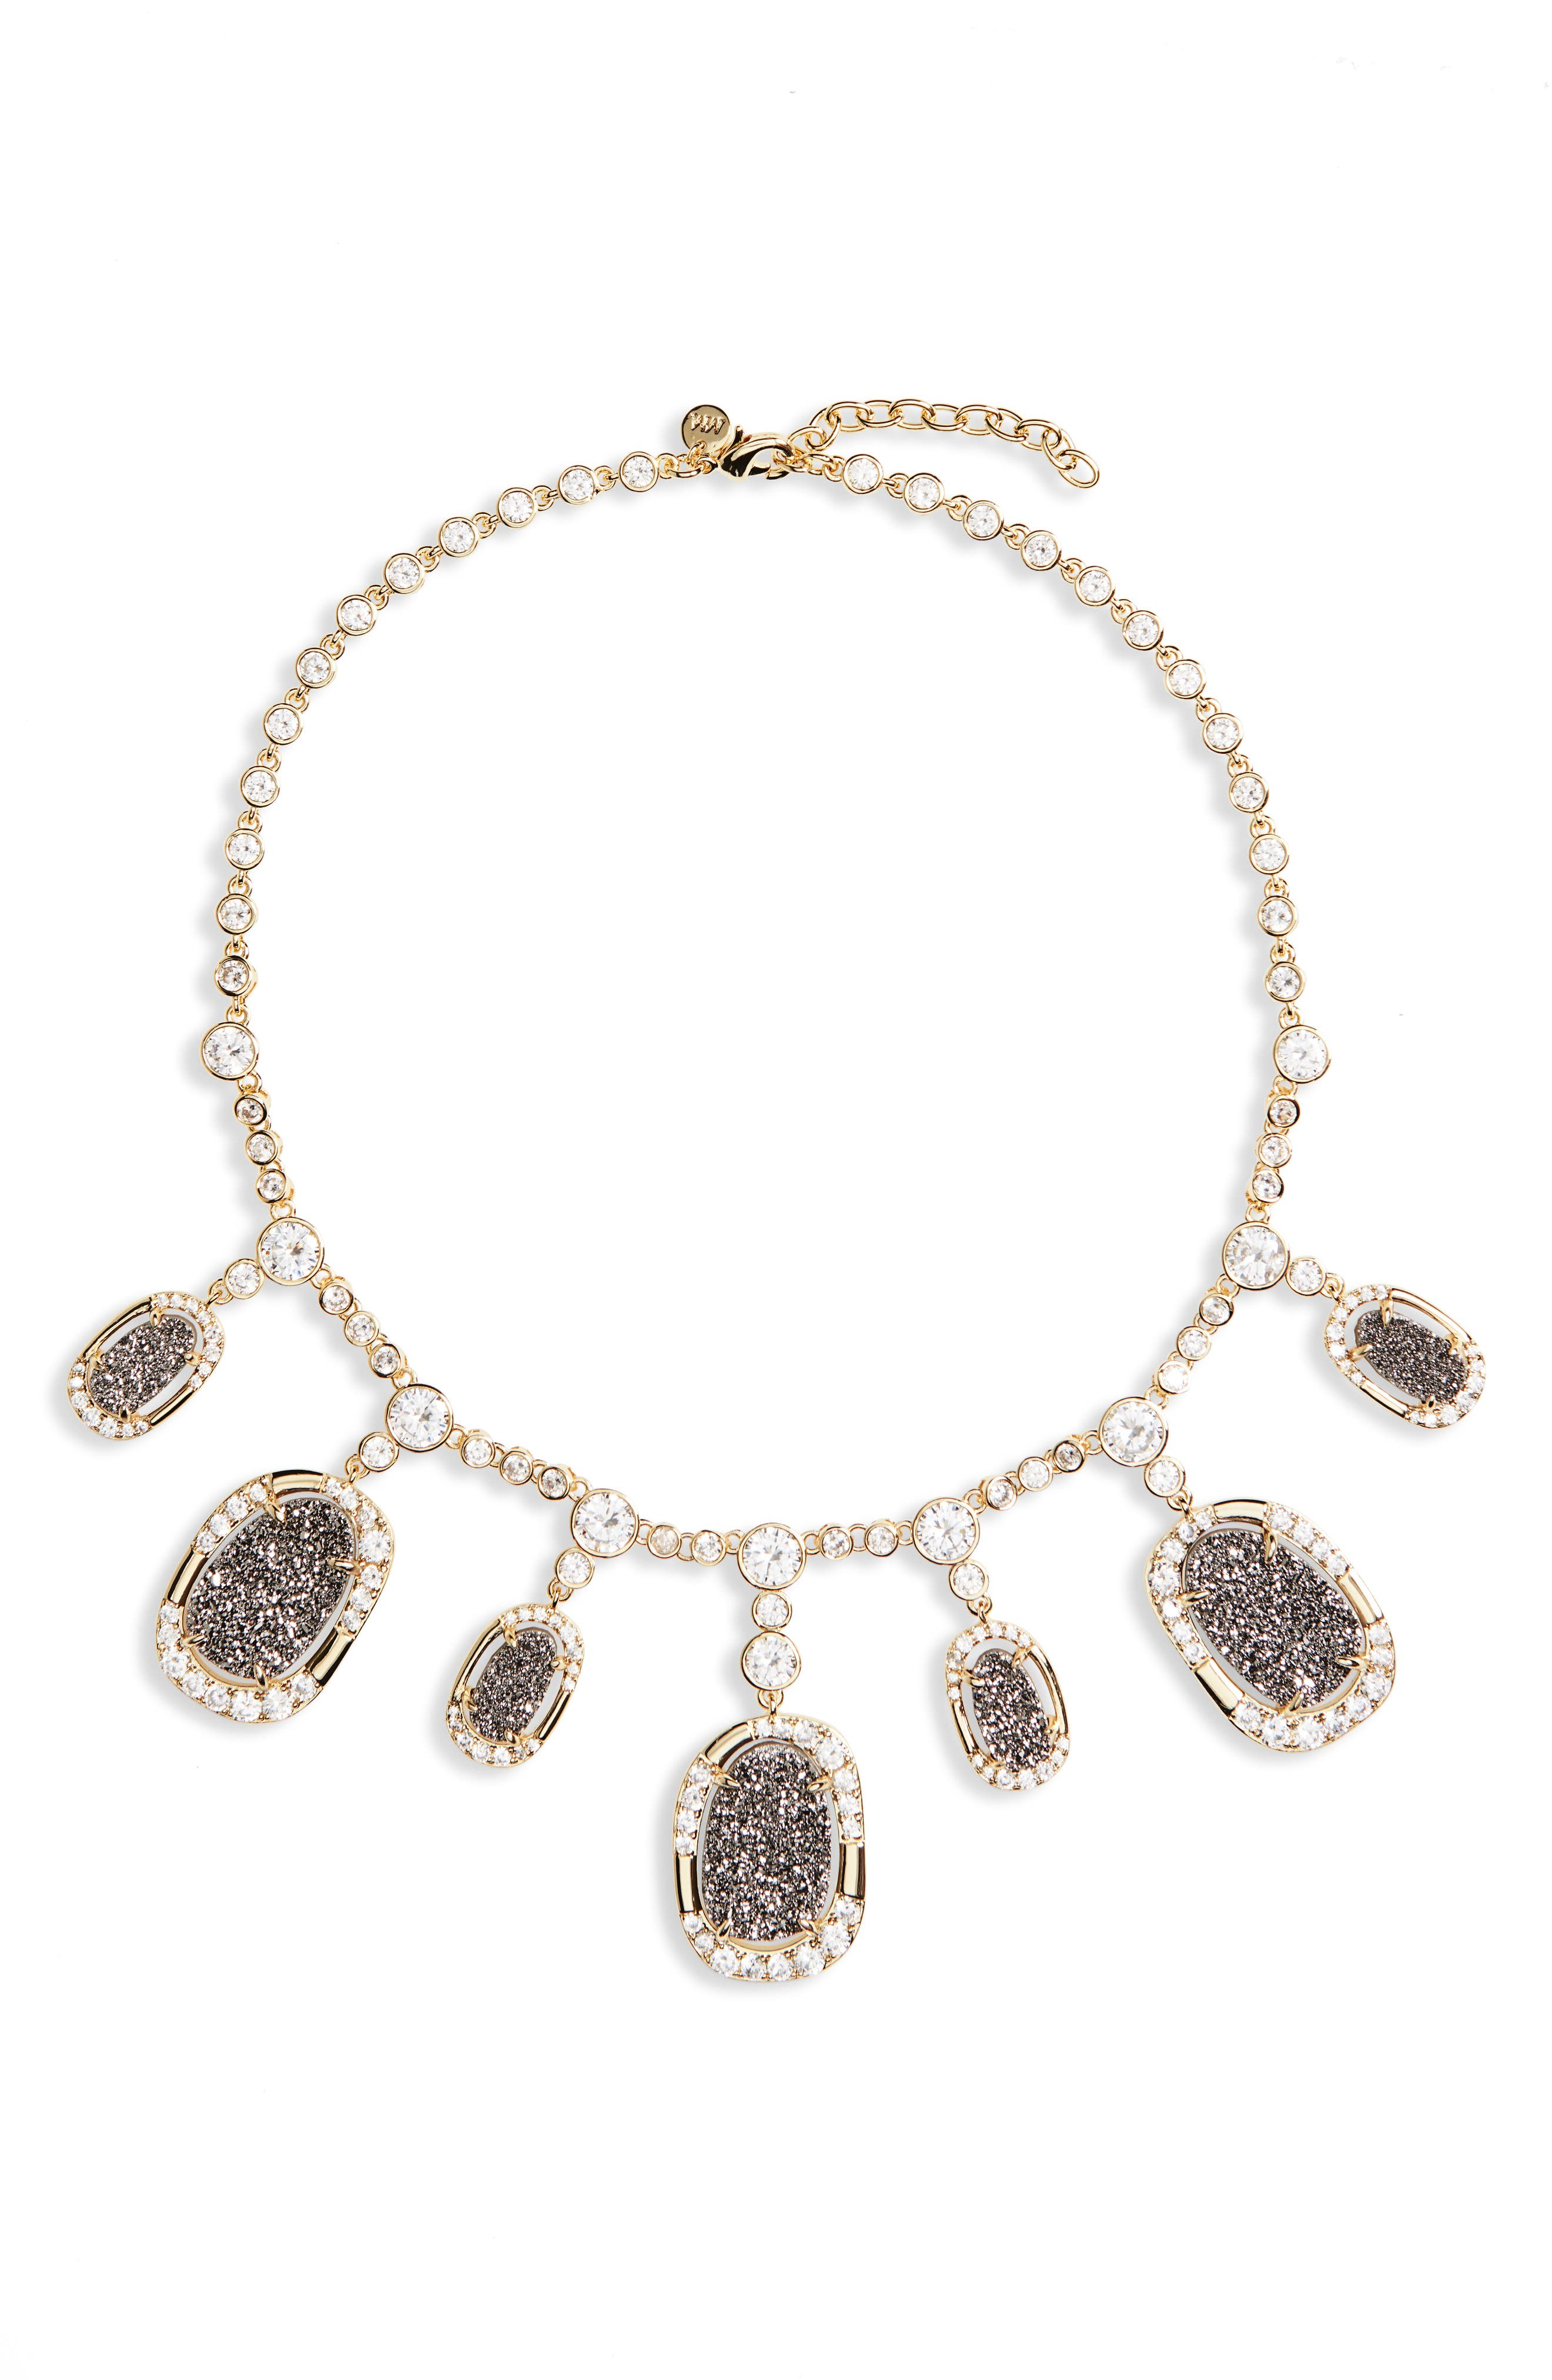 Woodward Statement Necklace,                             Main thumbnail 1, color,                             710